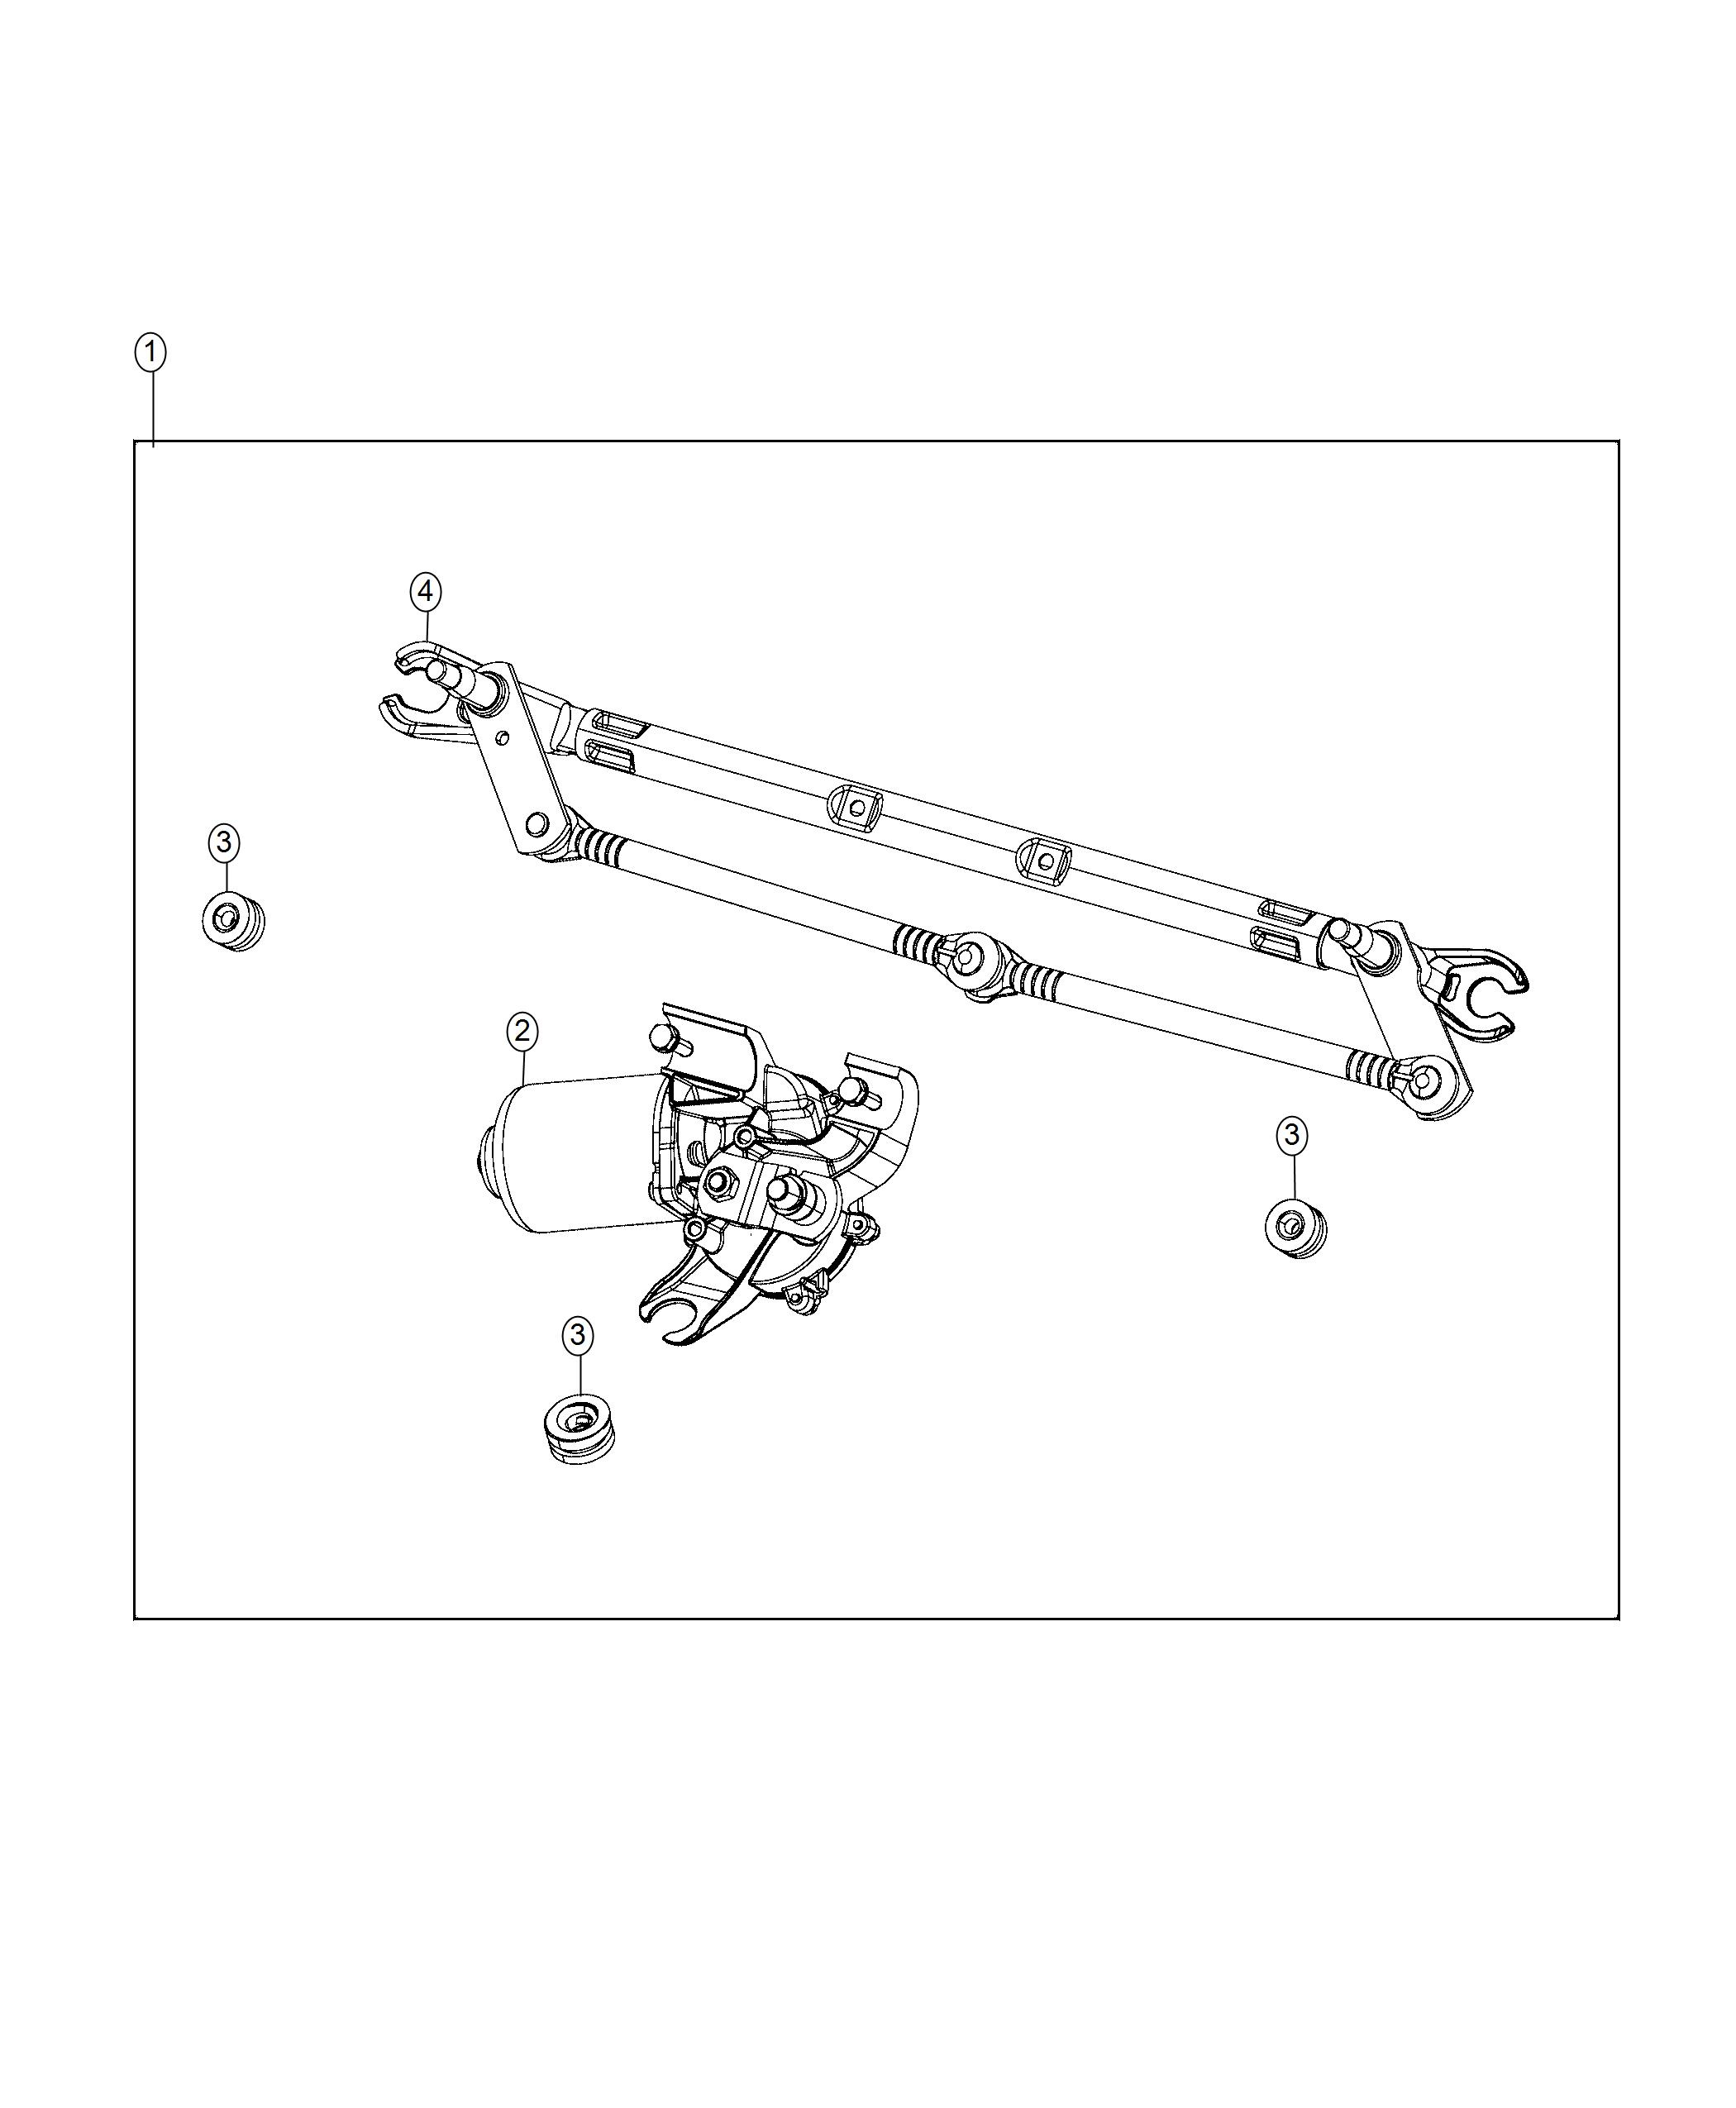 Jeep Renegade Used For Motor And Linkage Windshield